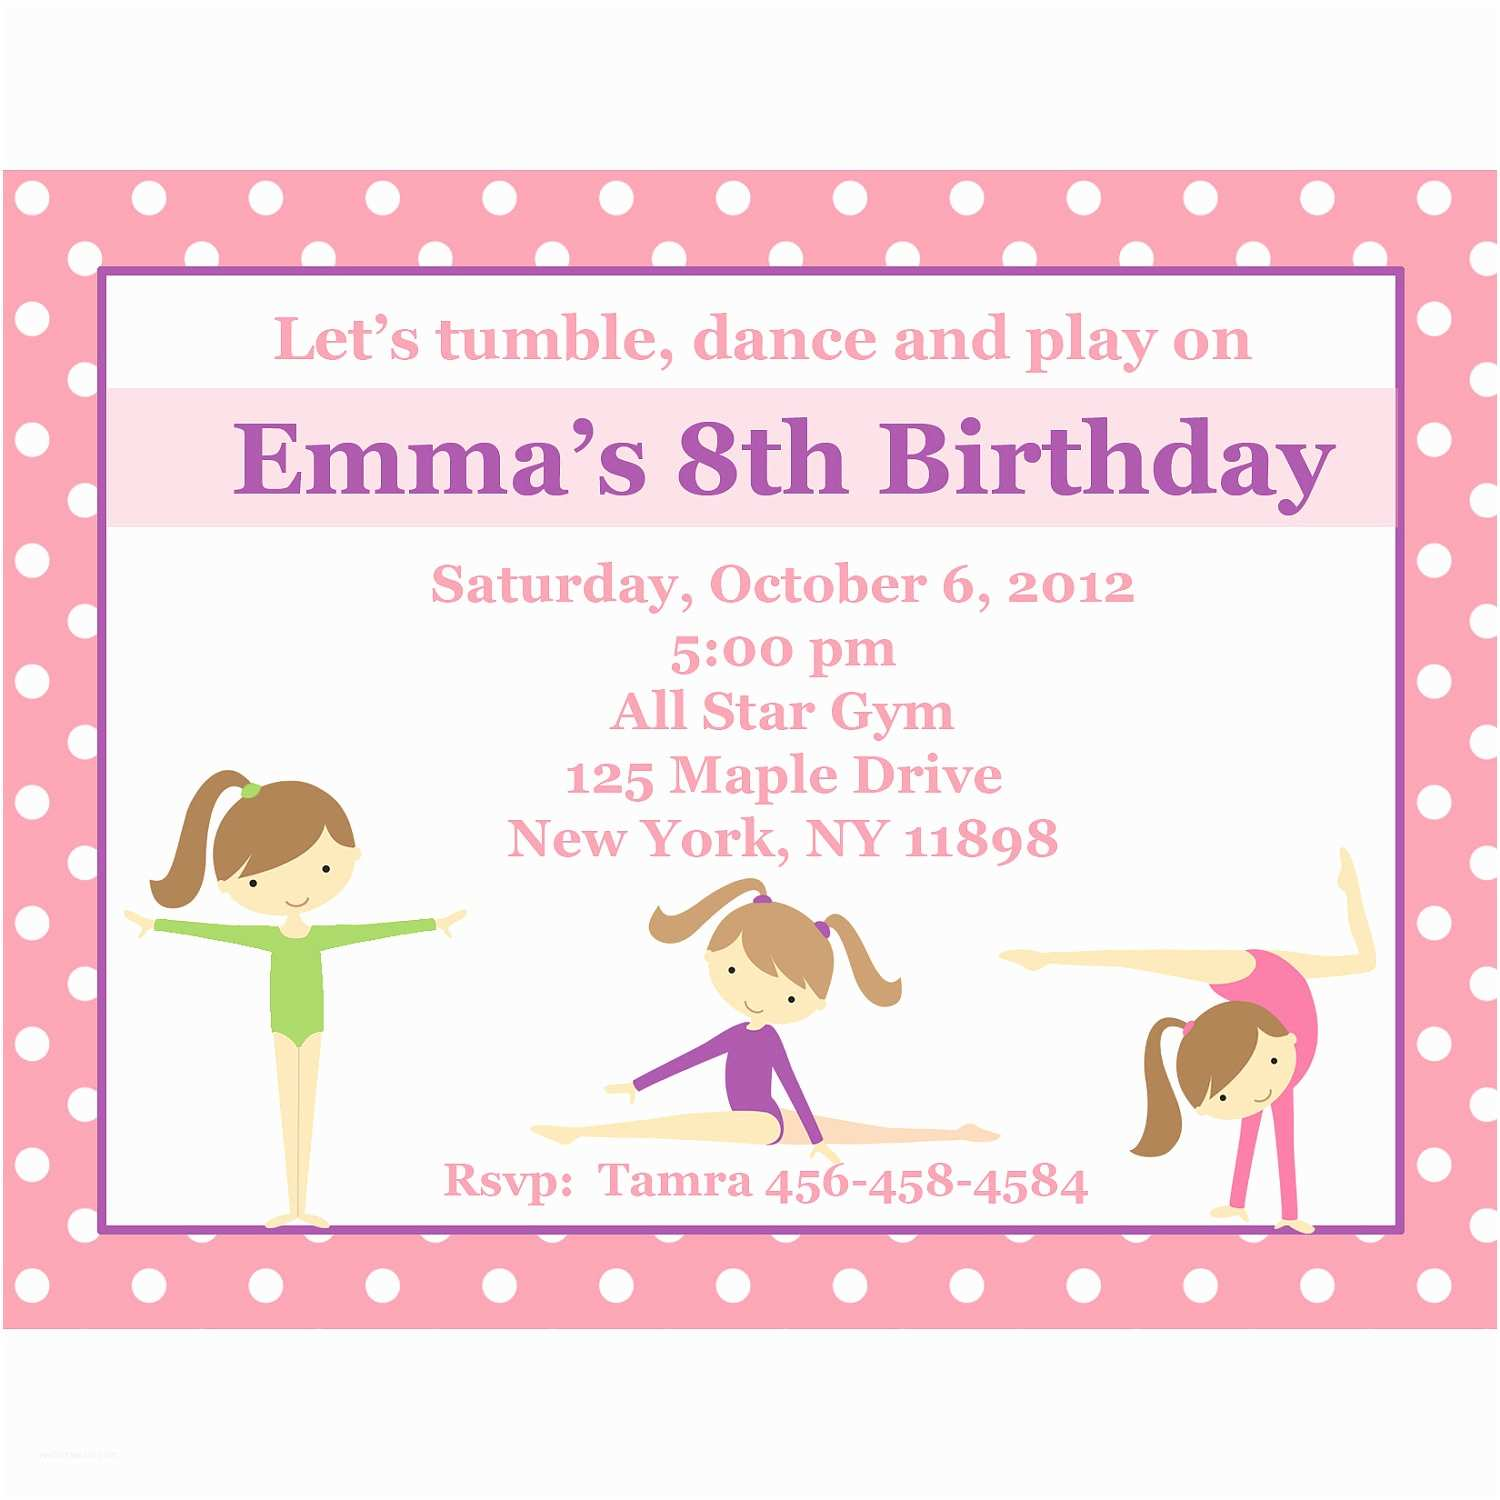 Personalized Birthday Invitations 20 Personalized Birthday Invitations Pink Gymnastics